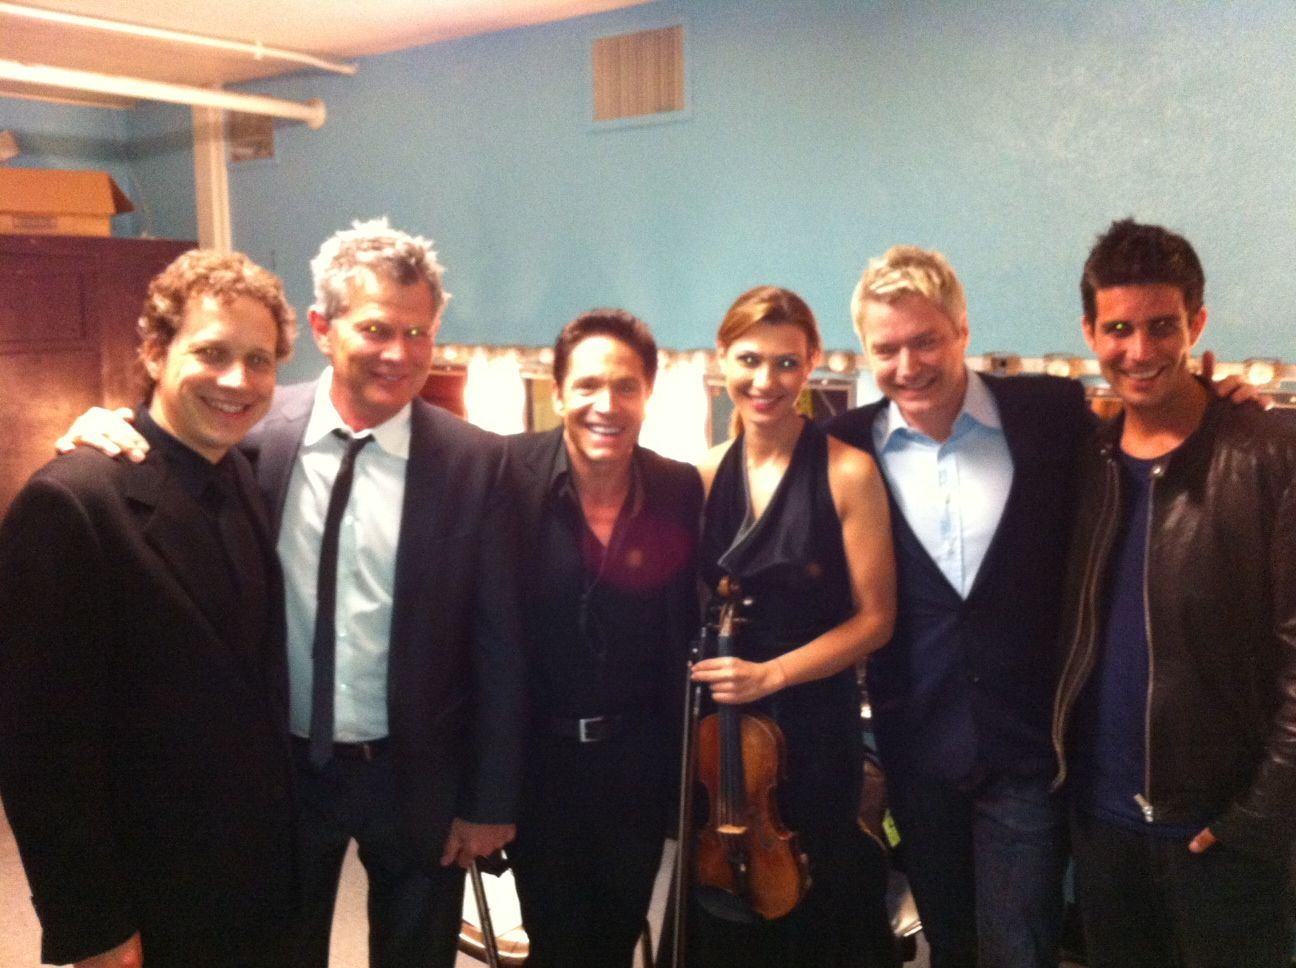 CW, David Foster, Dave Koz, Yelena Yegorian, Chris Botti (2012)